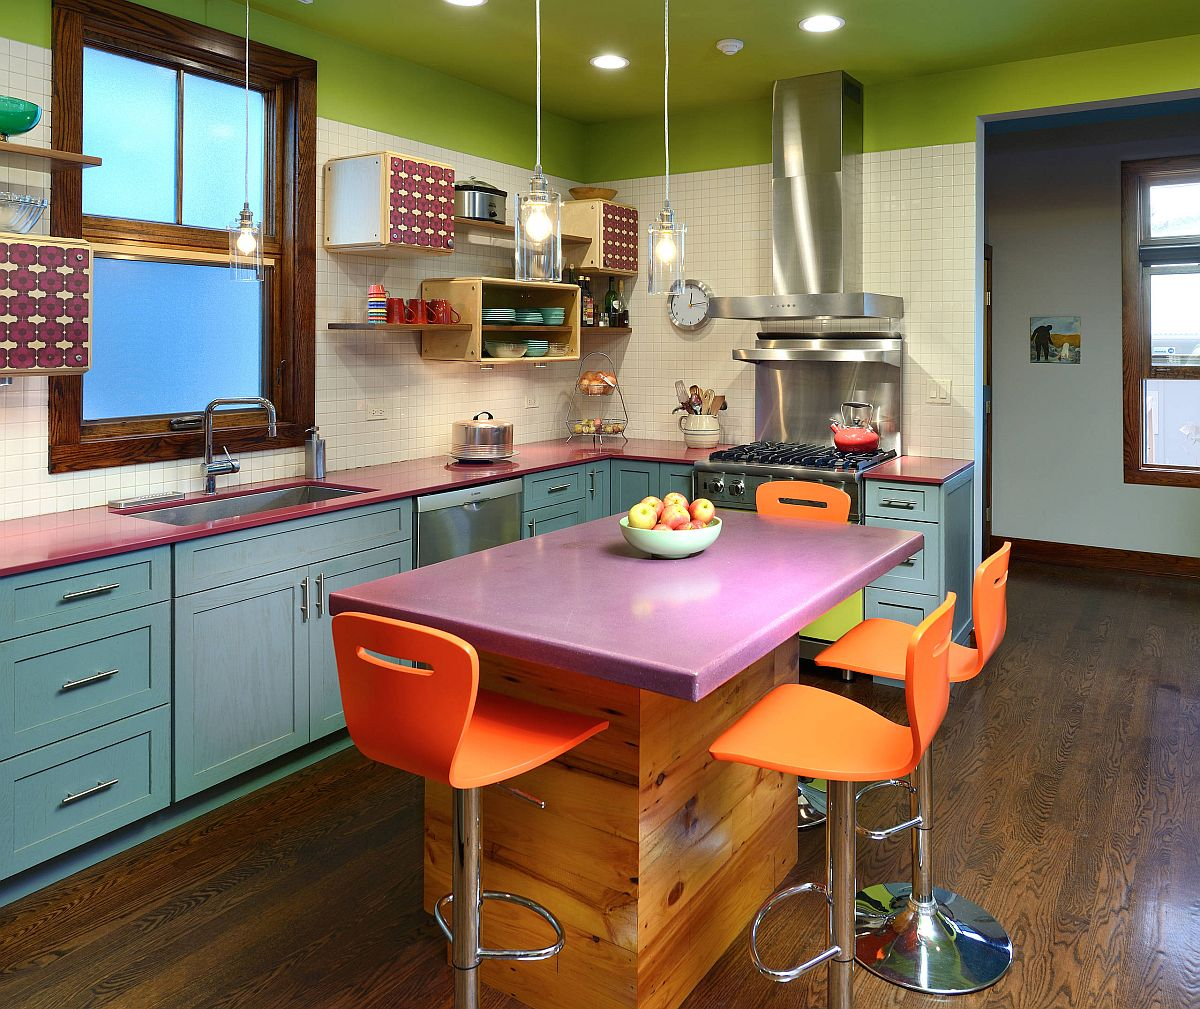 Imaginative use of bright color in the small eclectic kitchen